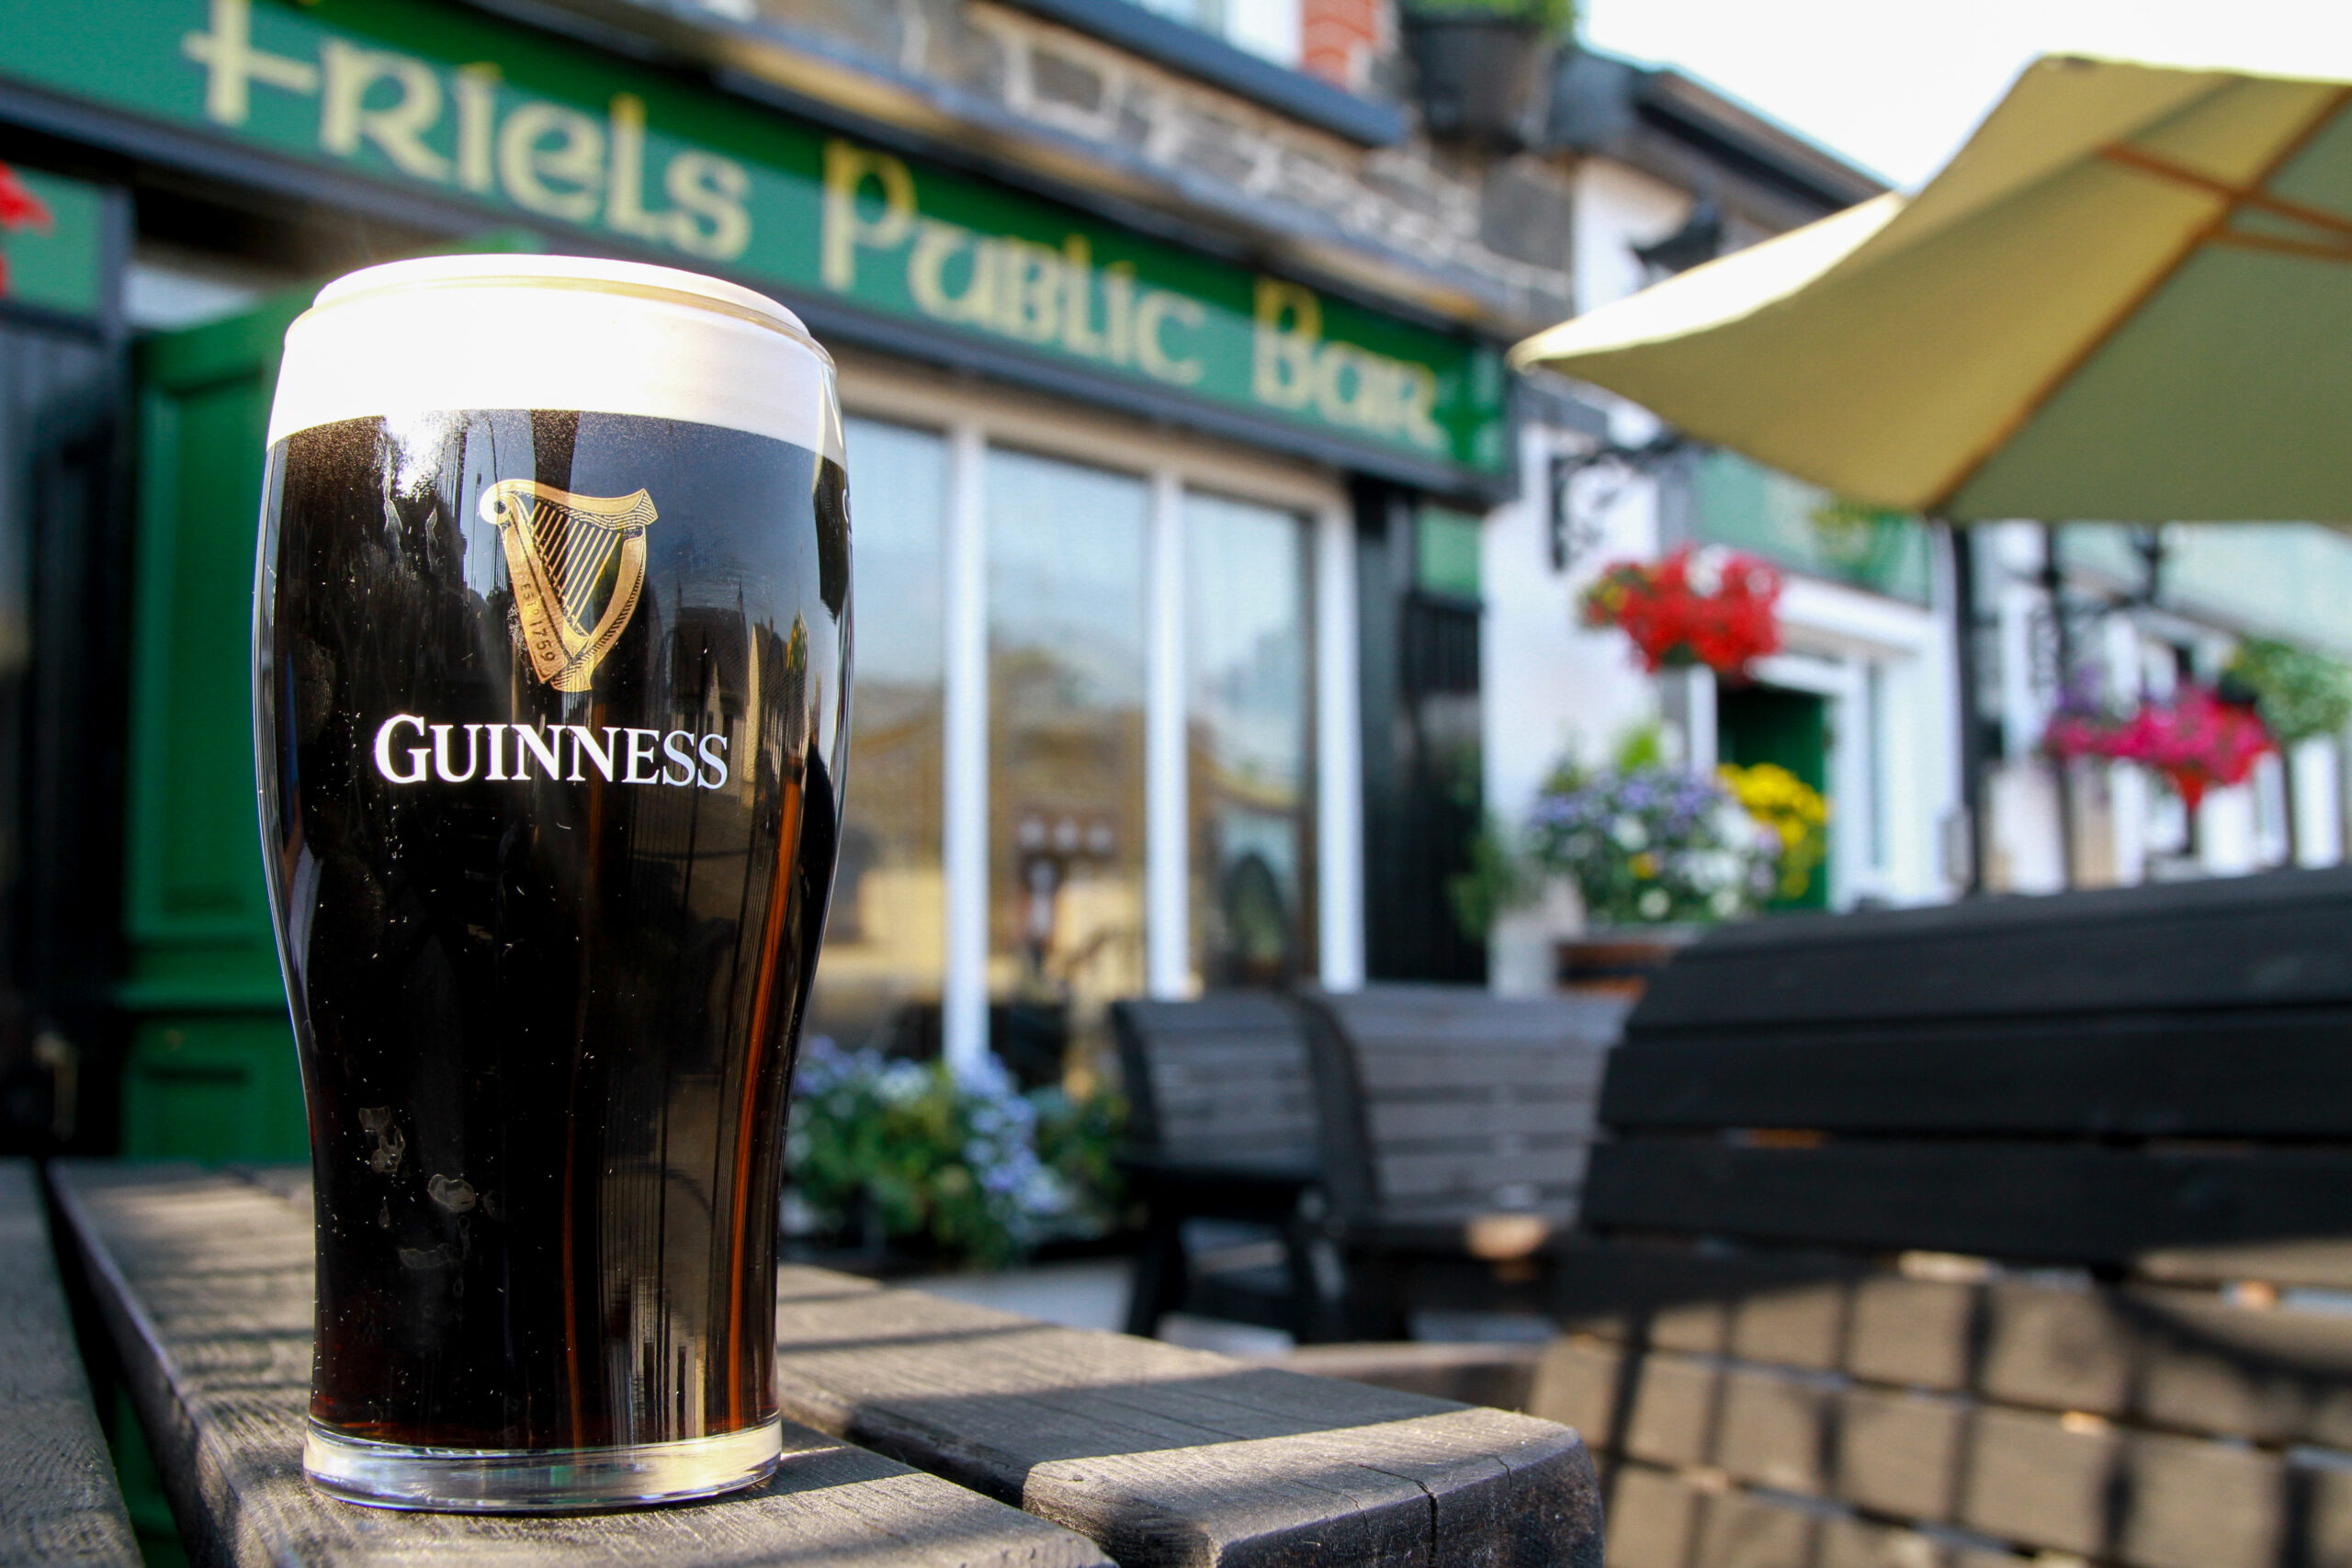 Pint of Guinness outside at Friels Bar Swatragh